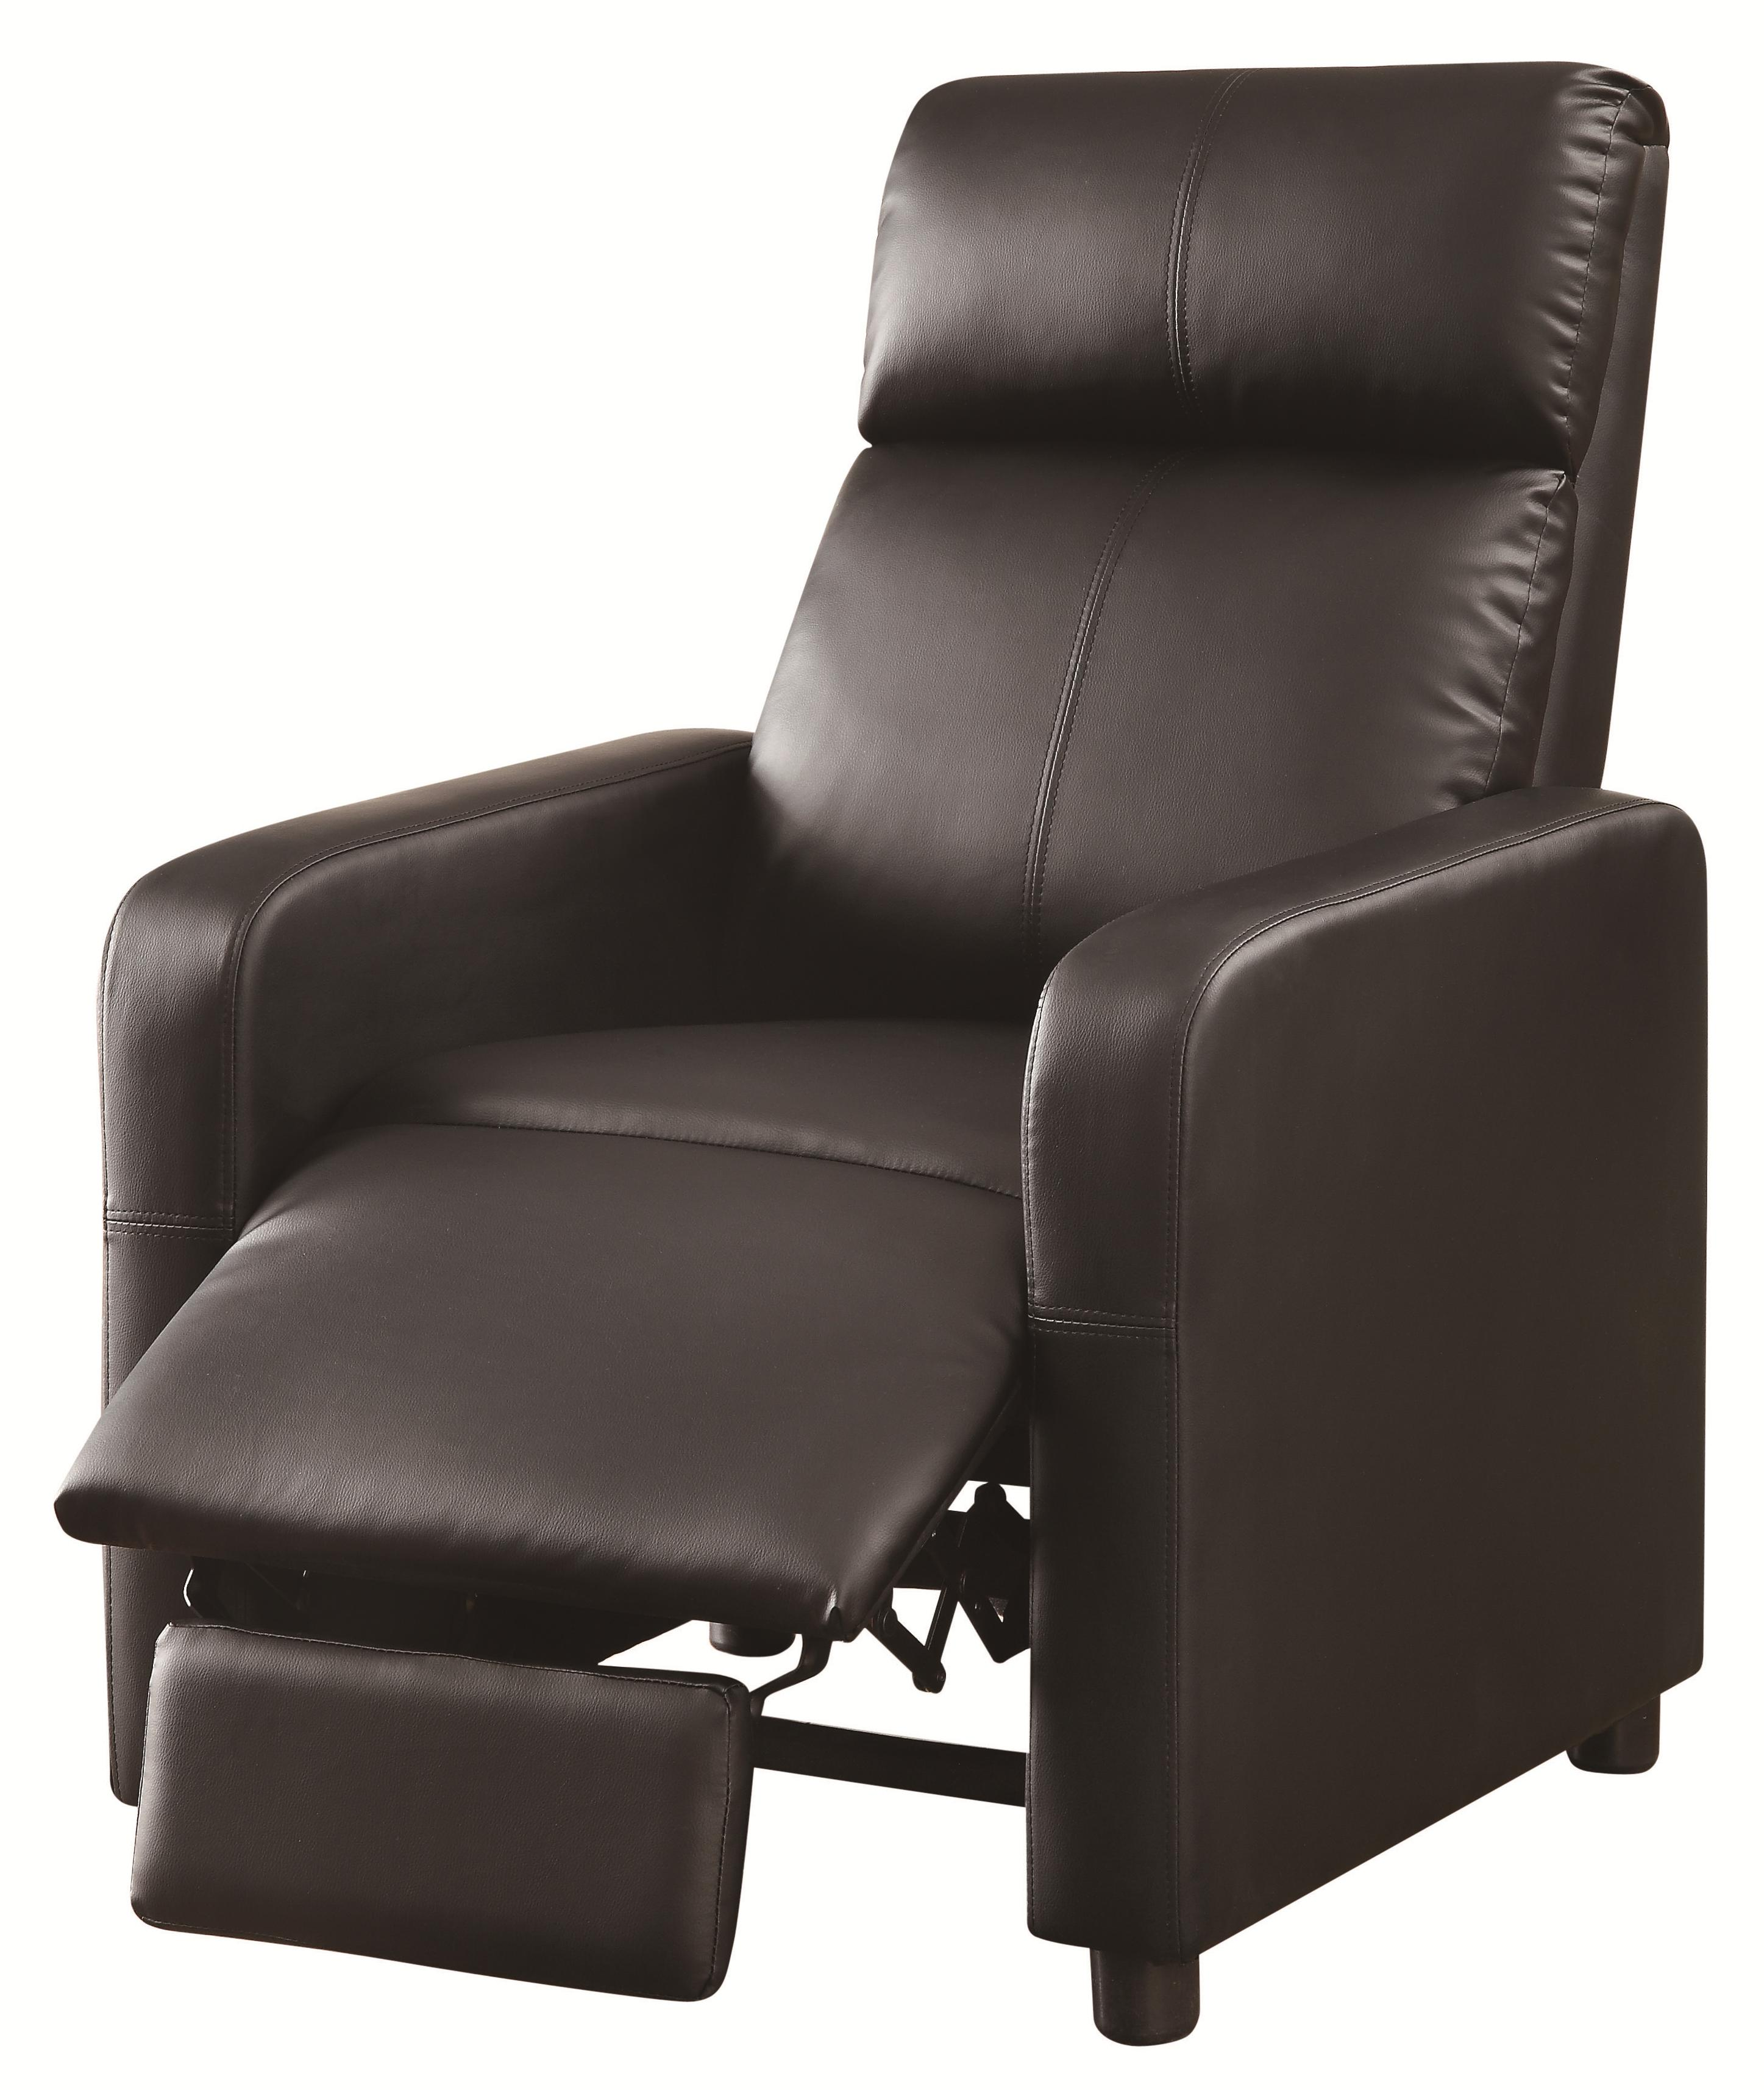 Push-Back Recliner